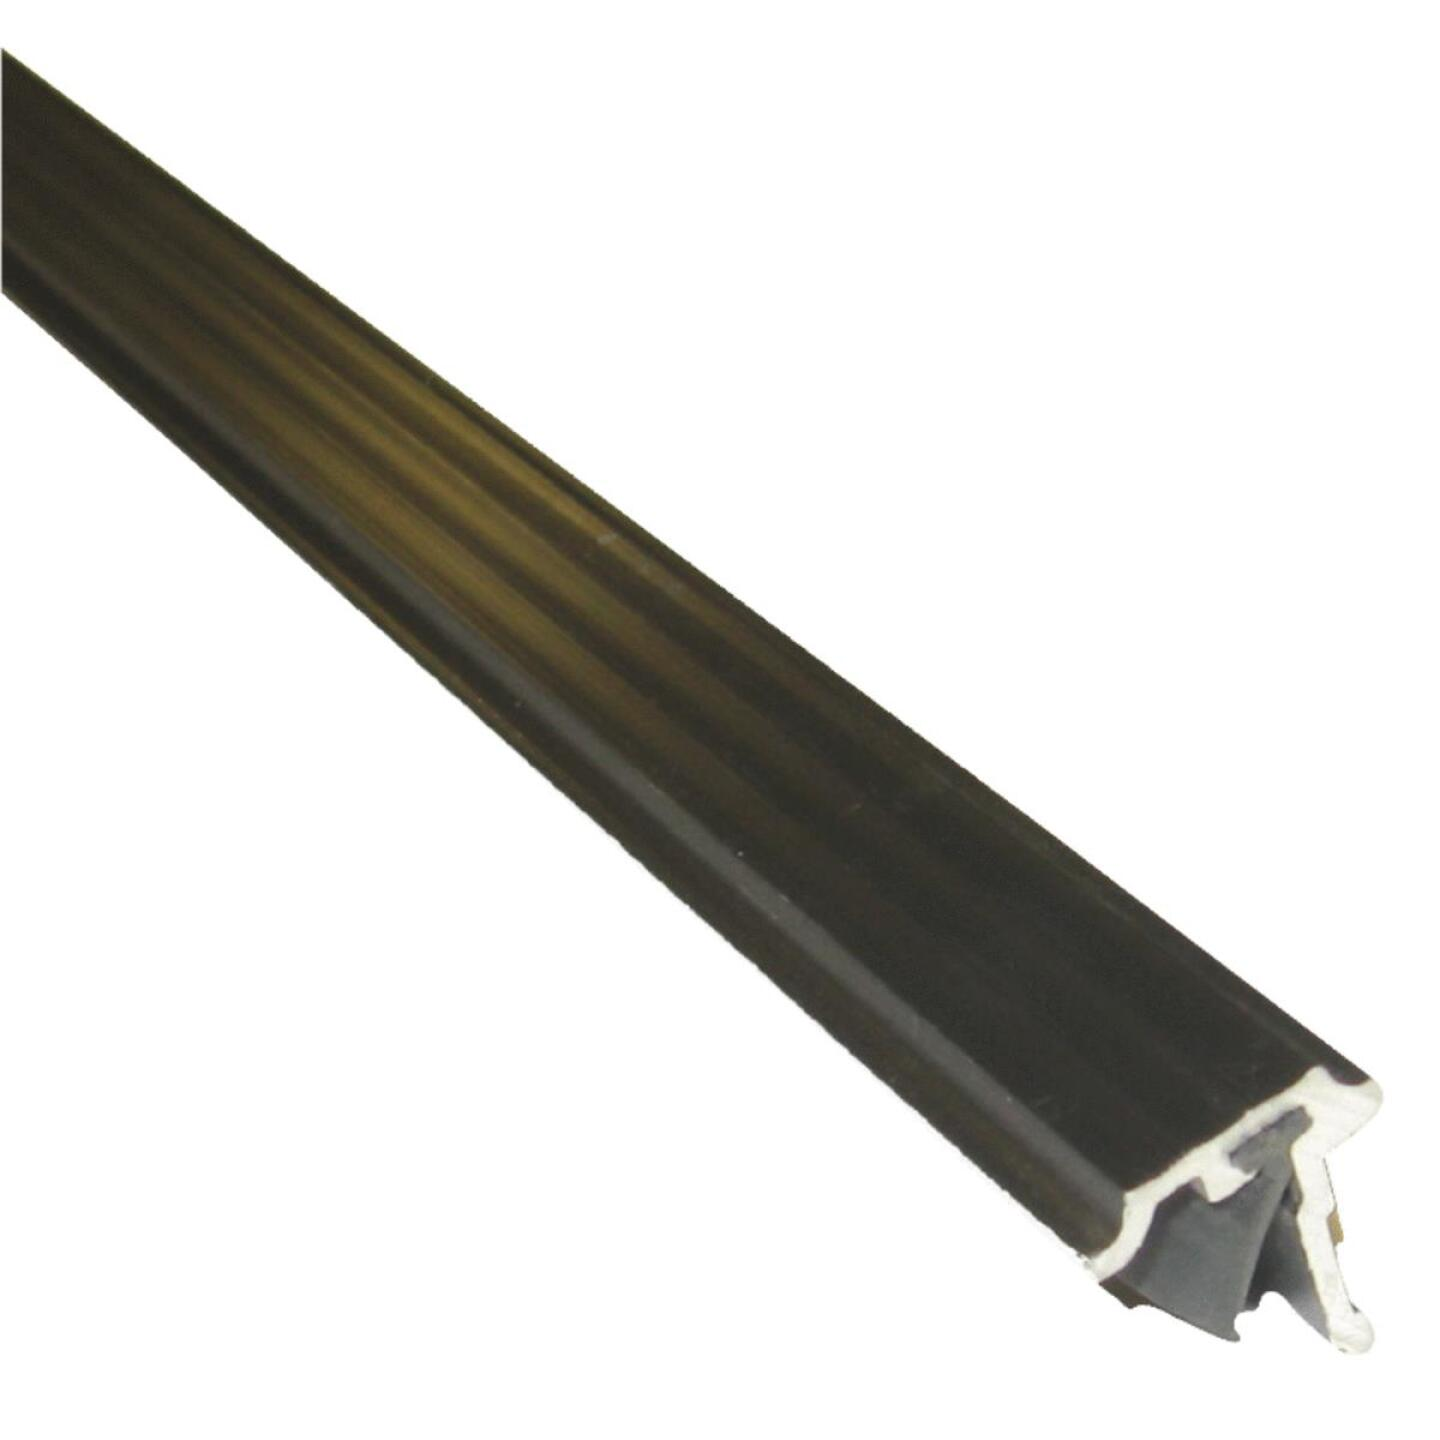 M-D Ultra 3/4 In. x 7 Ft. Bronze T-Astragal Nail-on Door Weatherstrip Image 1